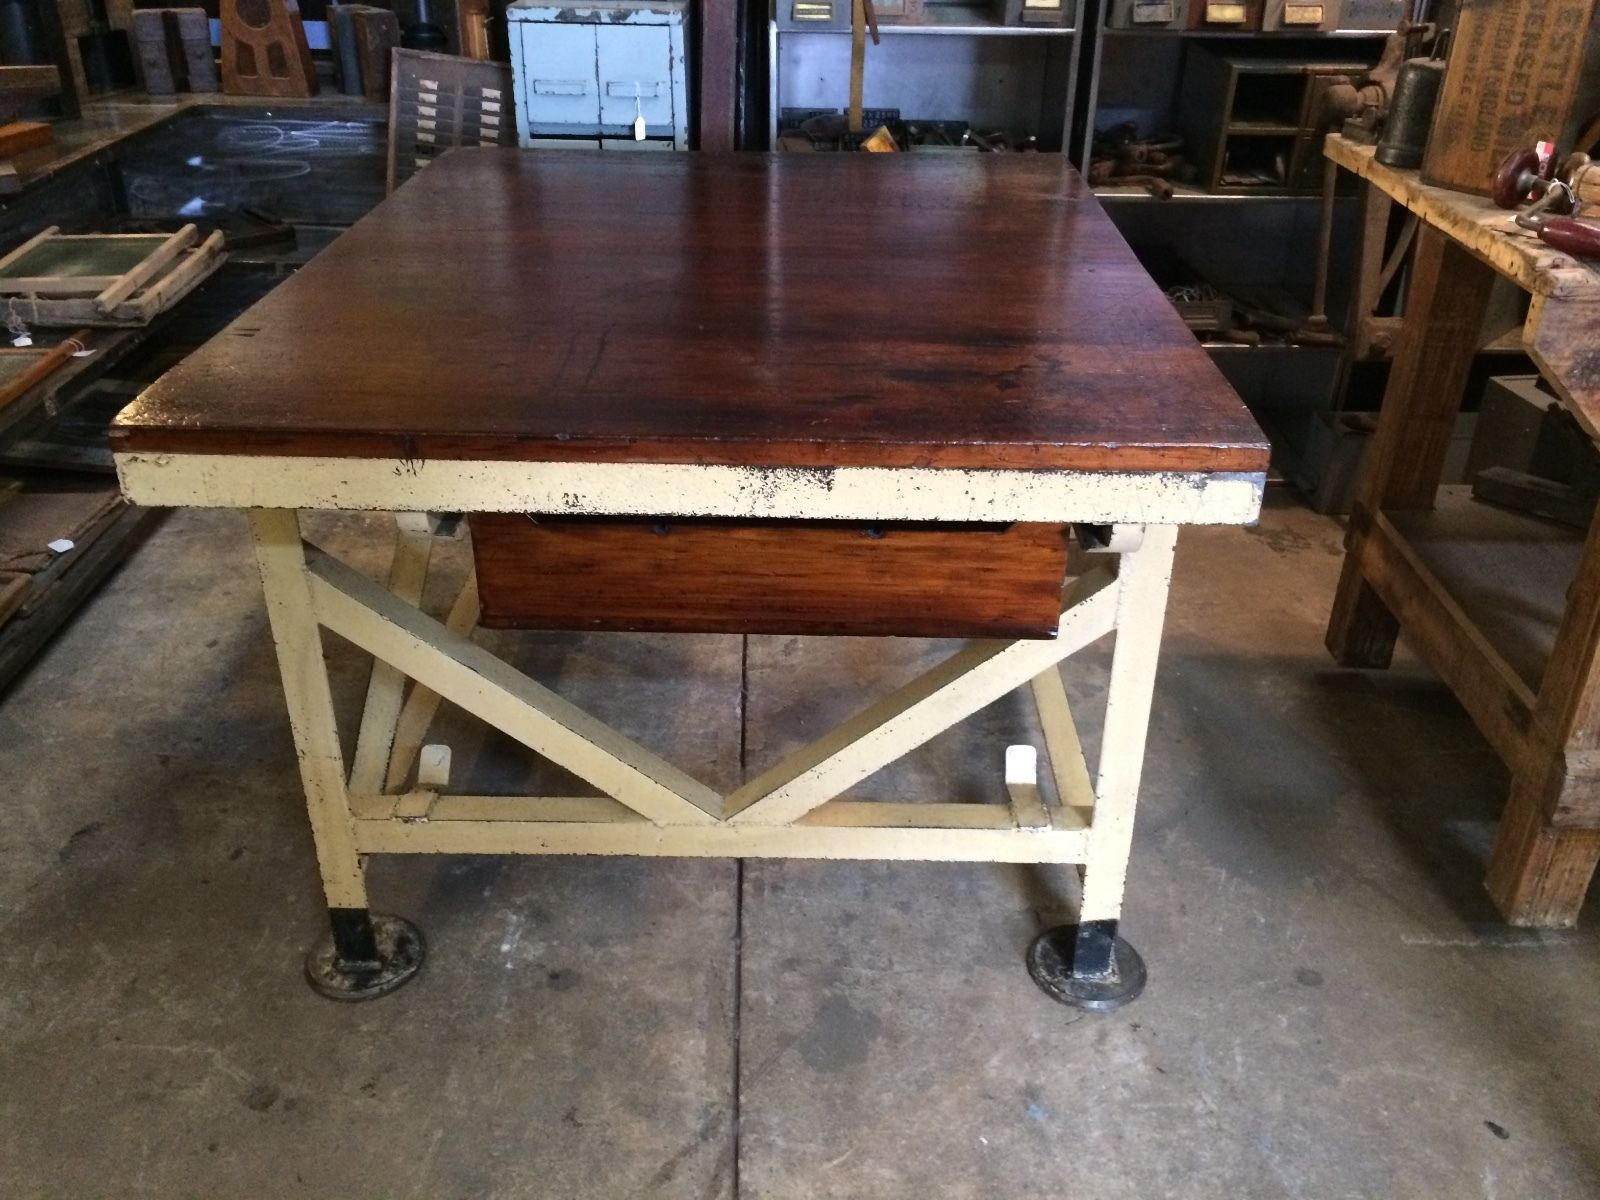 Vintage Industrial Rustic Table Work Bench   Melbourne   Halsey Road Recyclers